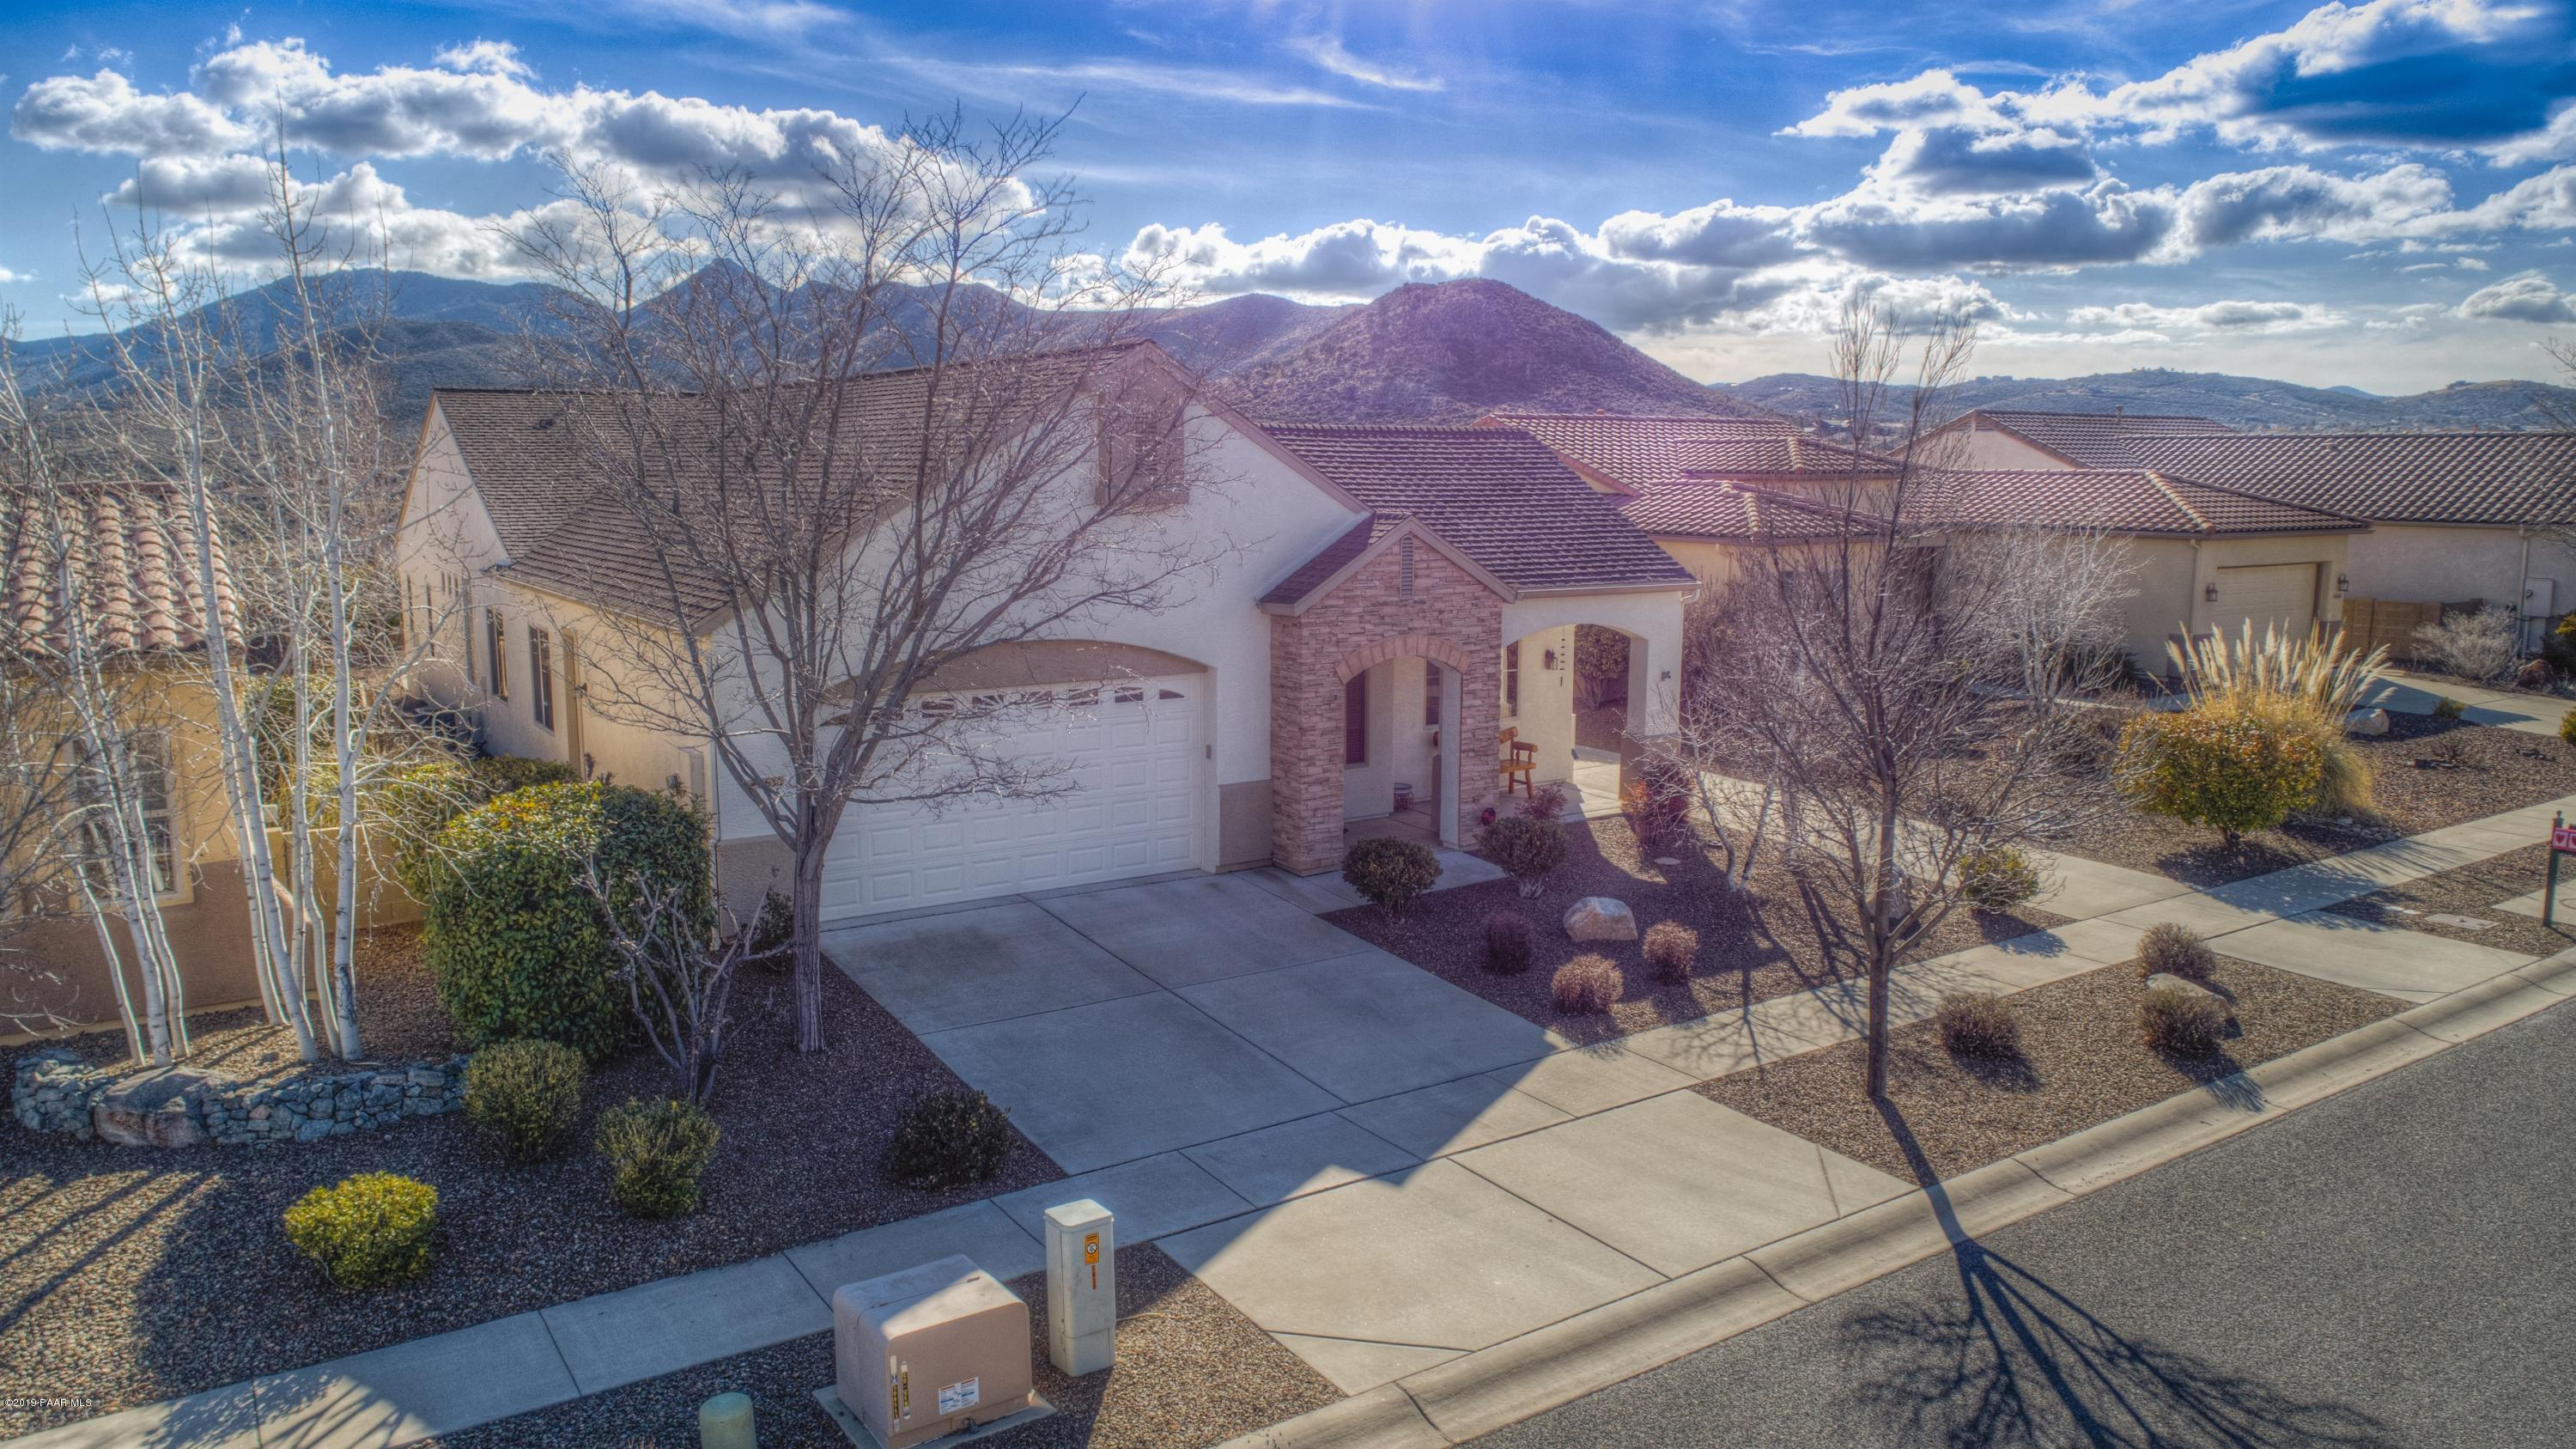 1638 N Thimble Lane, Prescott Valley, Arizona